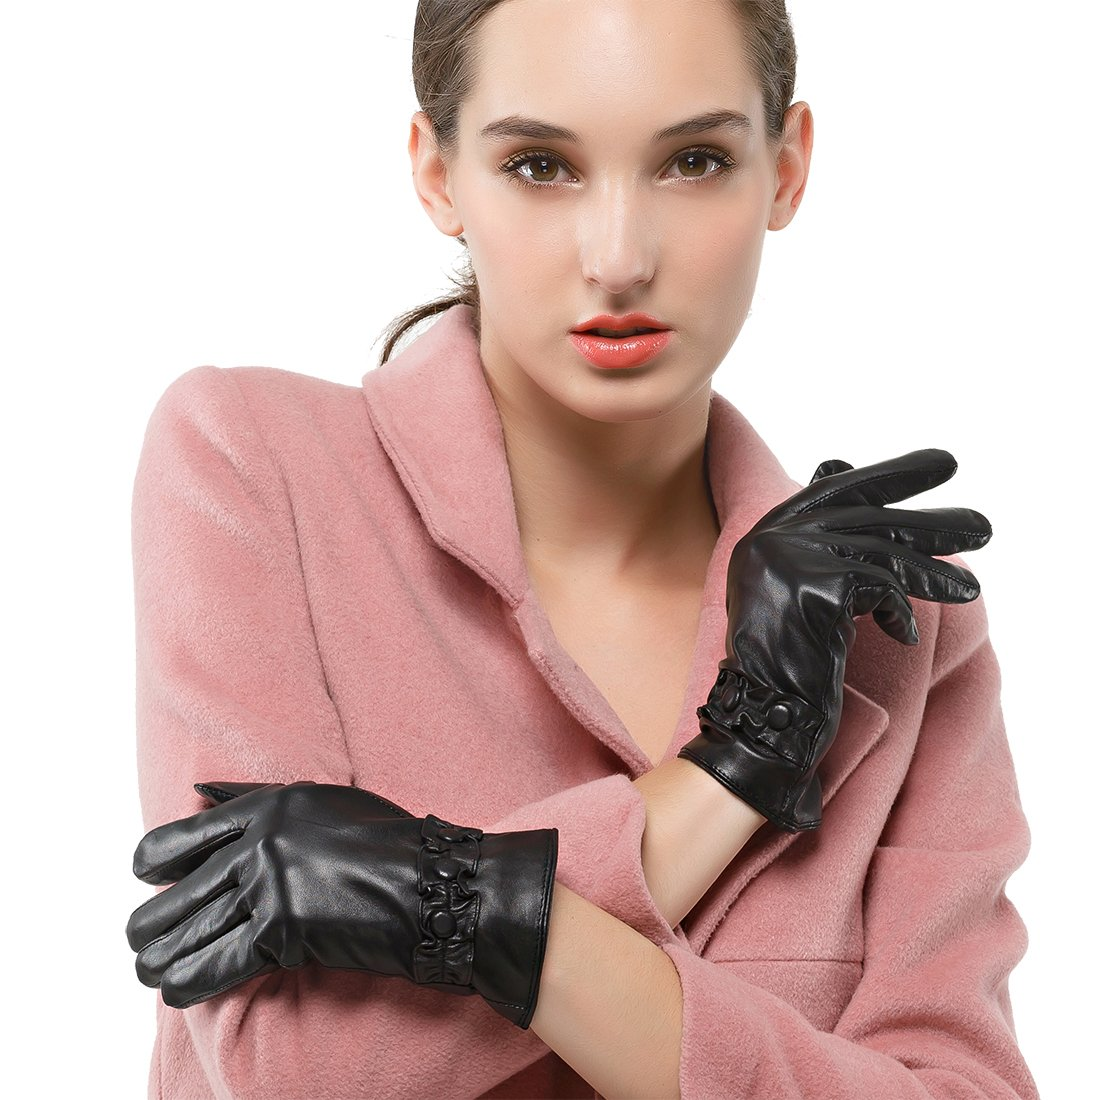 Nappaglo Women's Italian Nappa Leather Gloves Touchscreen Short Warm Gloves with Decorative Wrist Lace (XXL (Palm Girth:8.5''-9''), Black (Touchscreen))